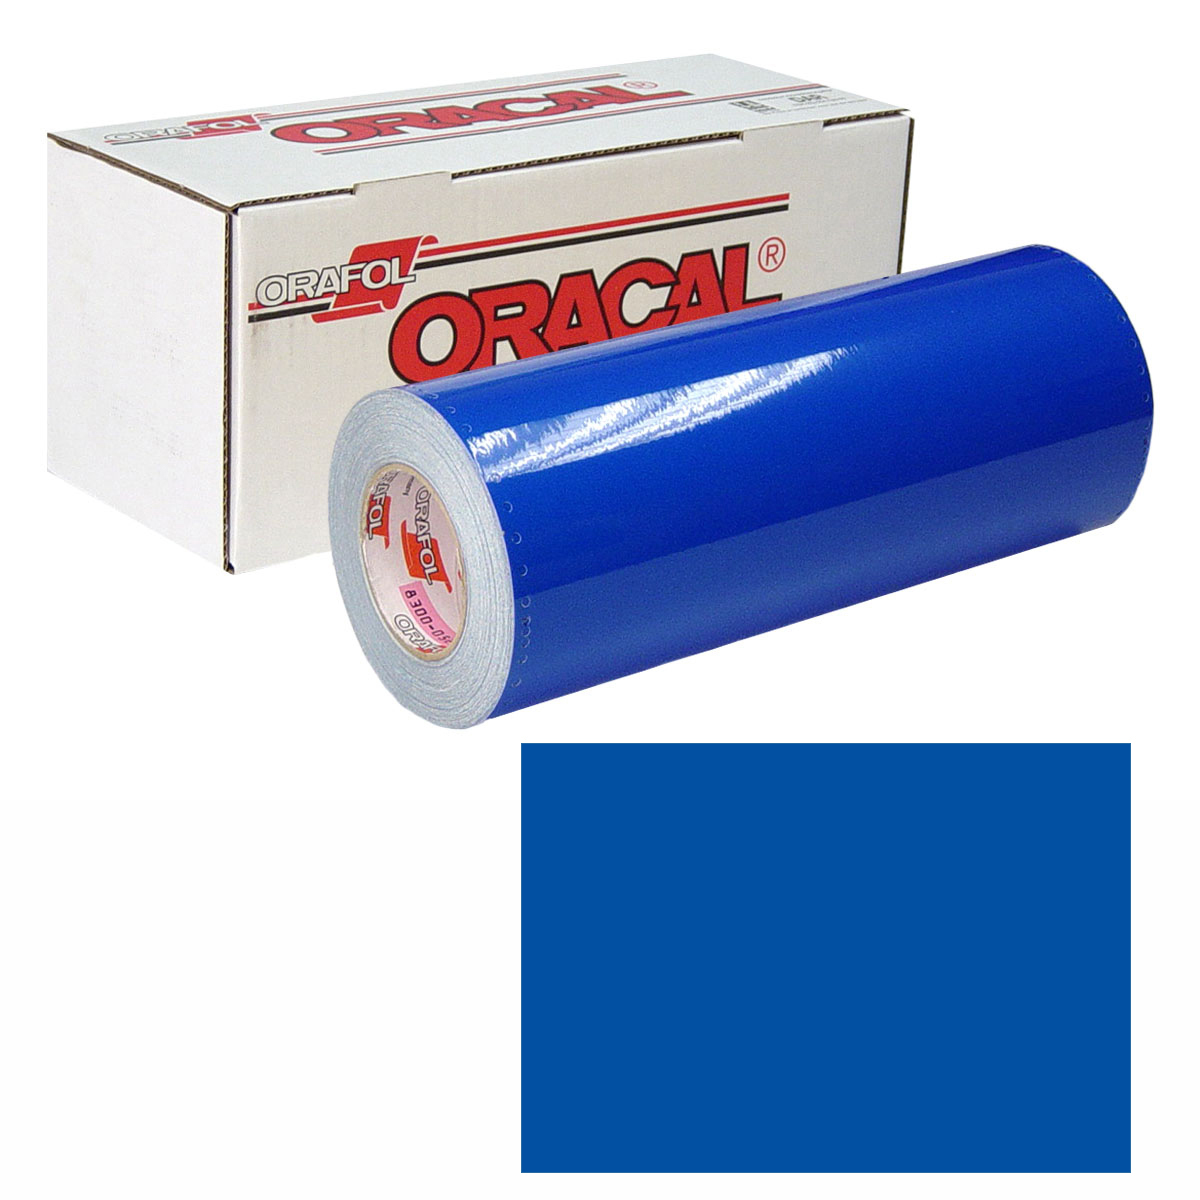 ORACAL 631 Unp 30In X 50Yd 098 Gentian